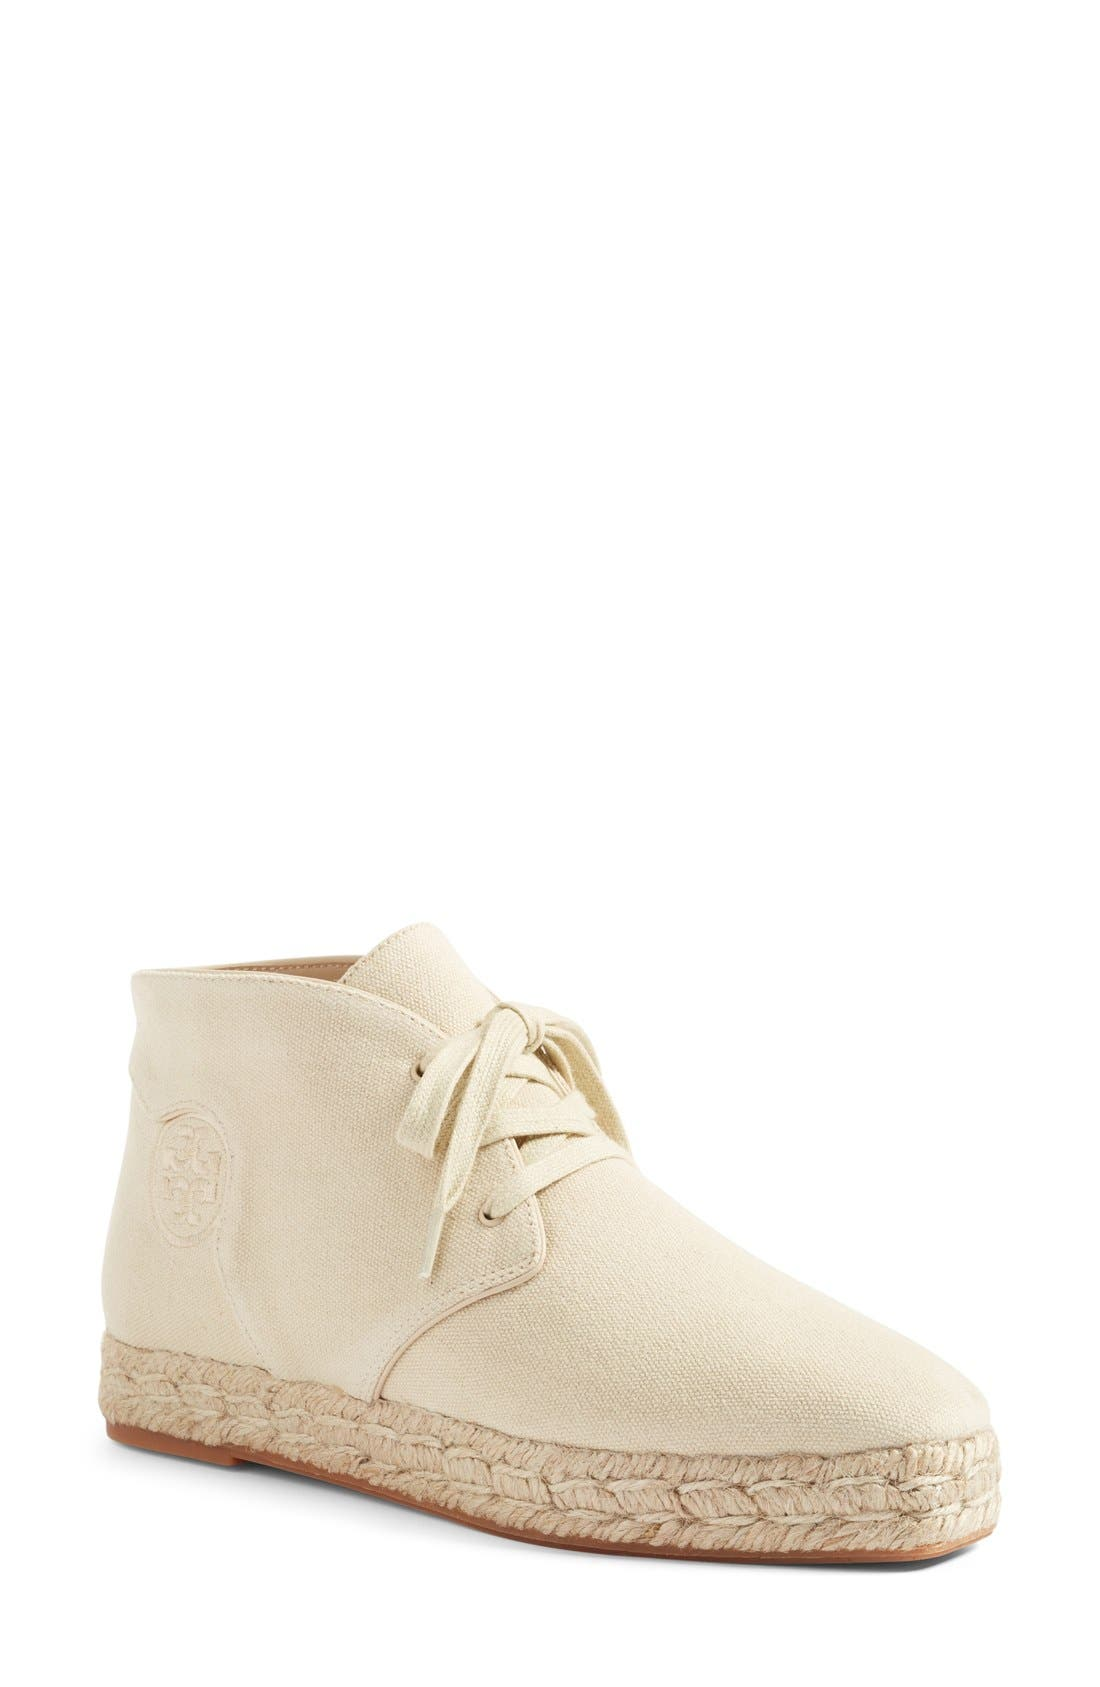 Image of Tory Burch Rios Espadrille Bootie